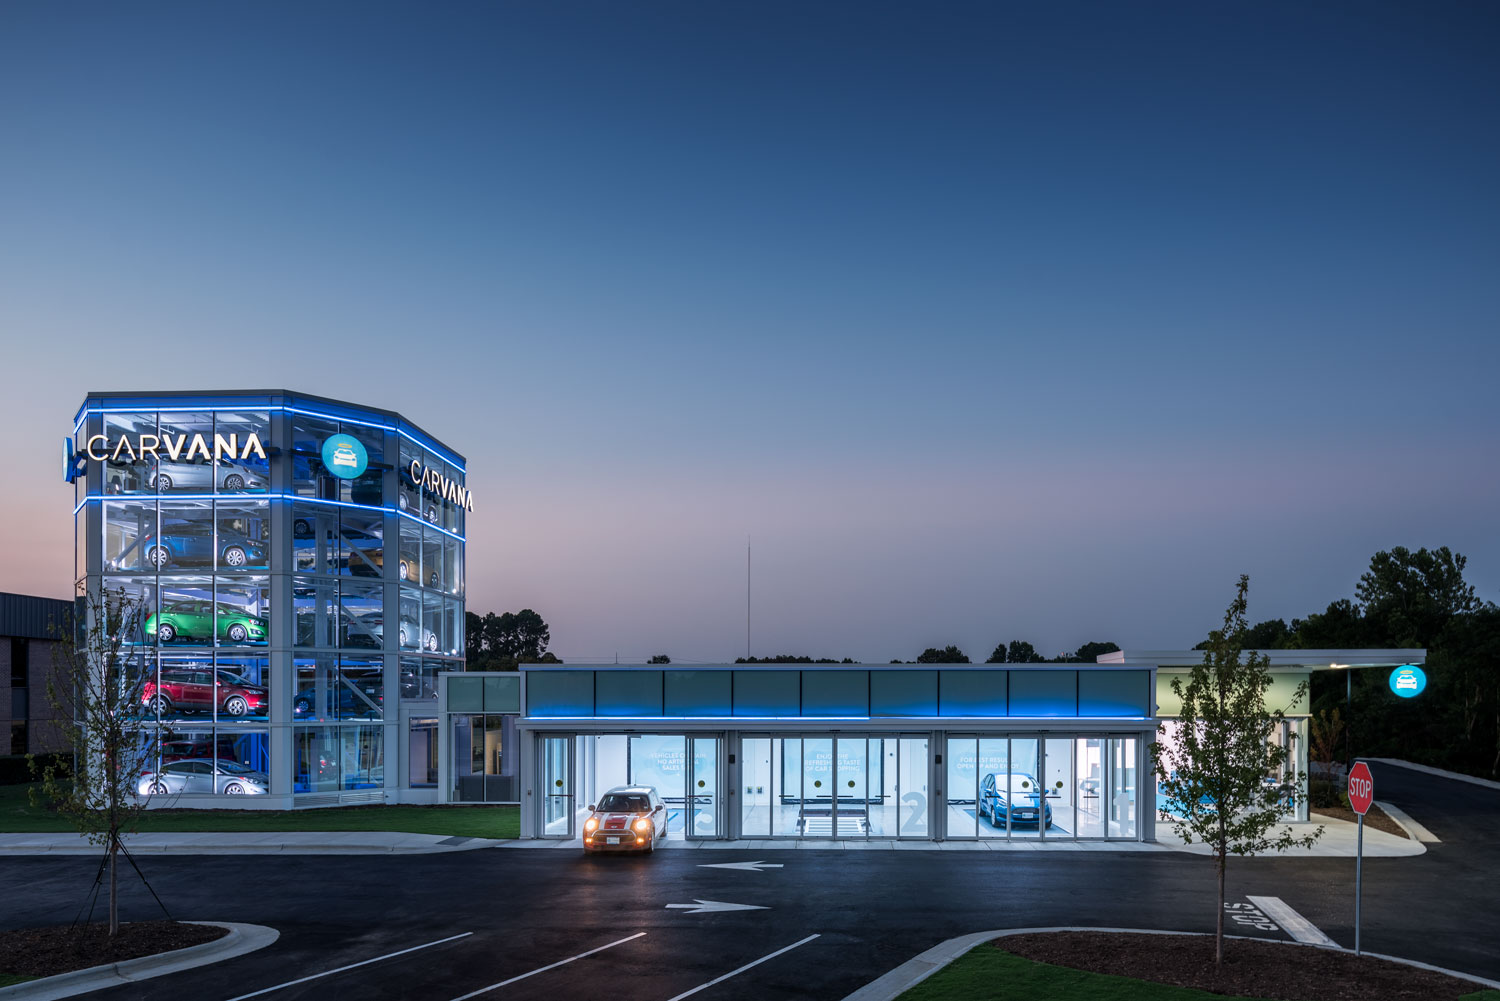 CARVANA, car vending machine and garages, Raleigh, NC © harlan erskine.